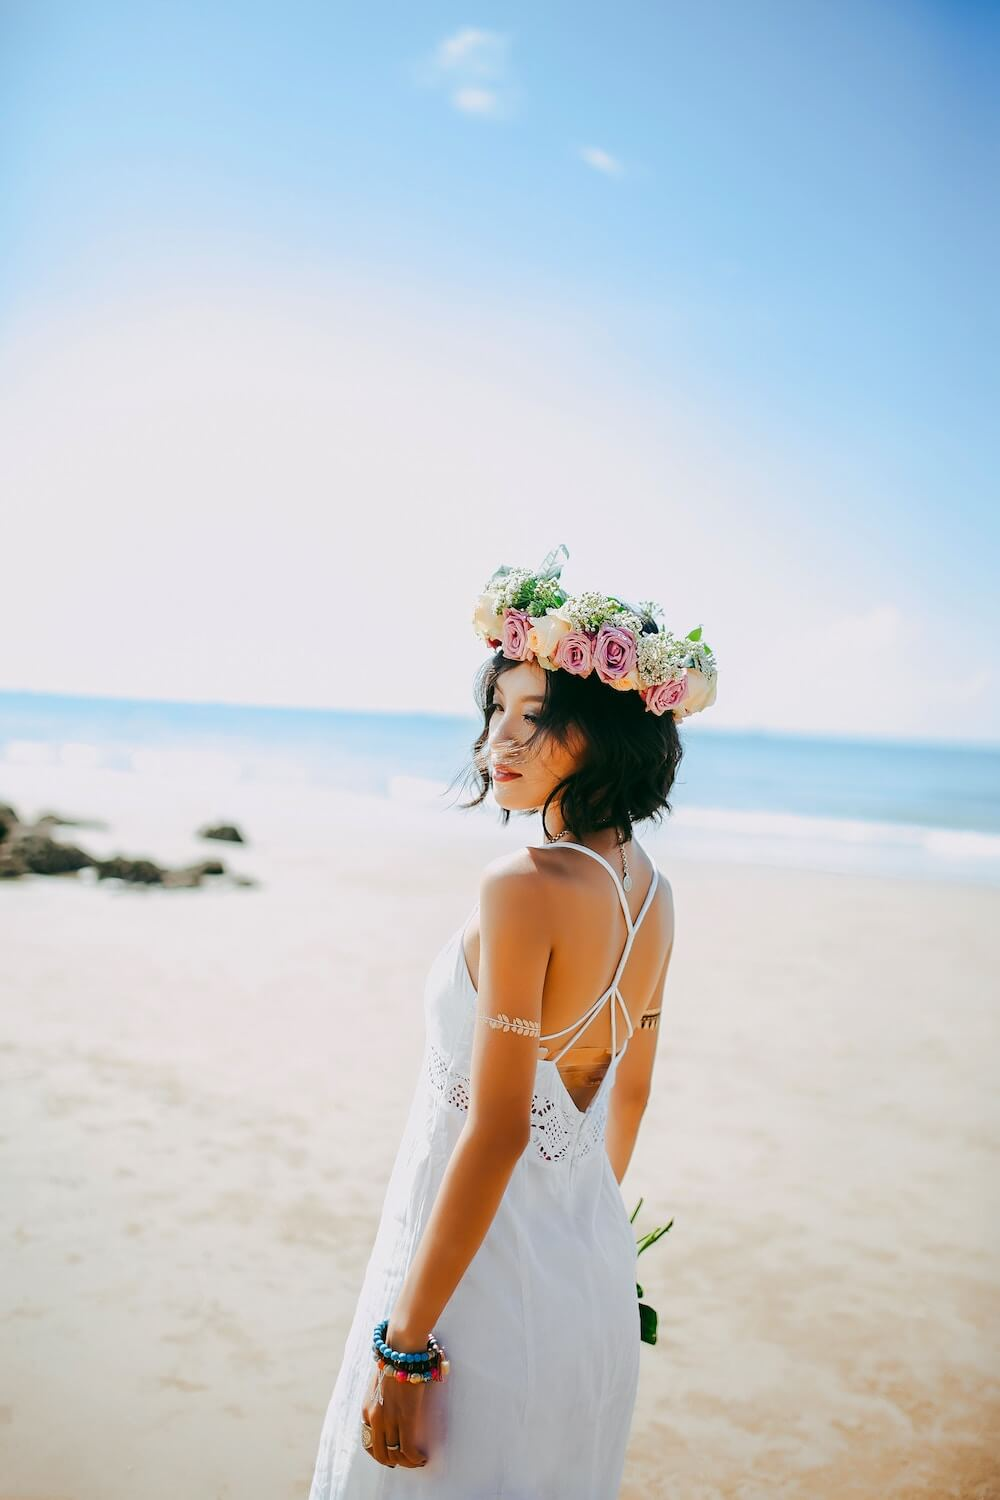 Woman standing on beach holding flowers